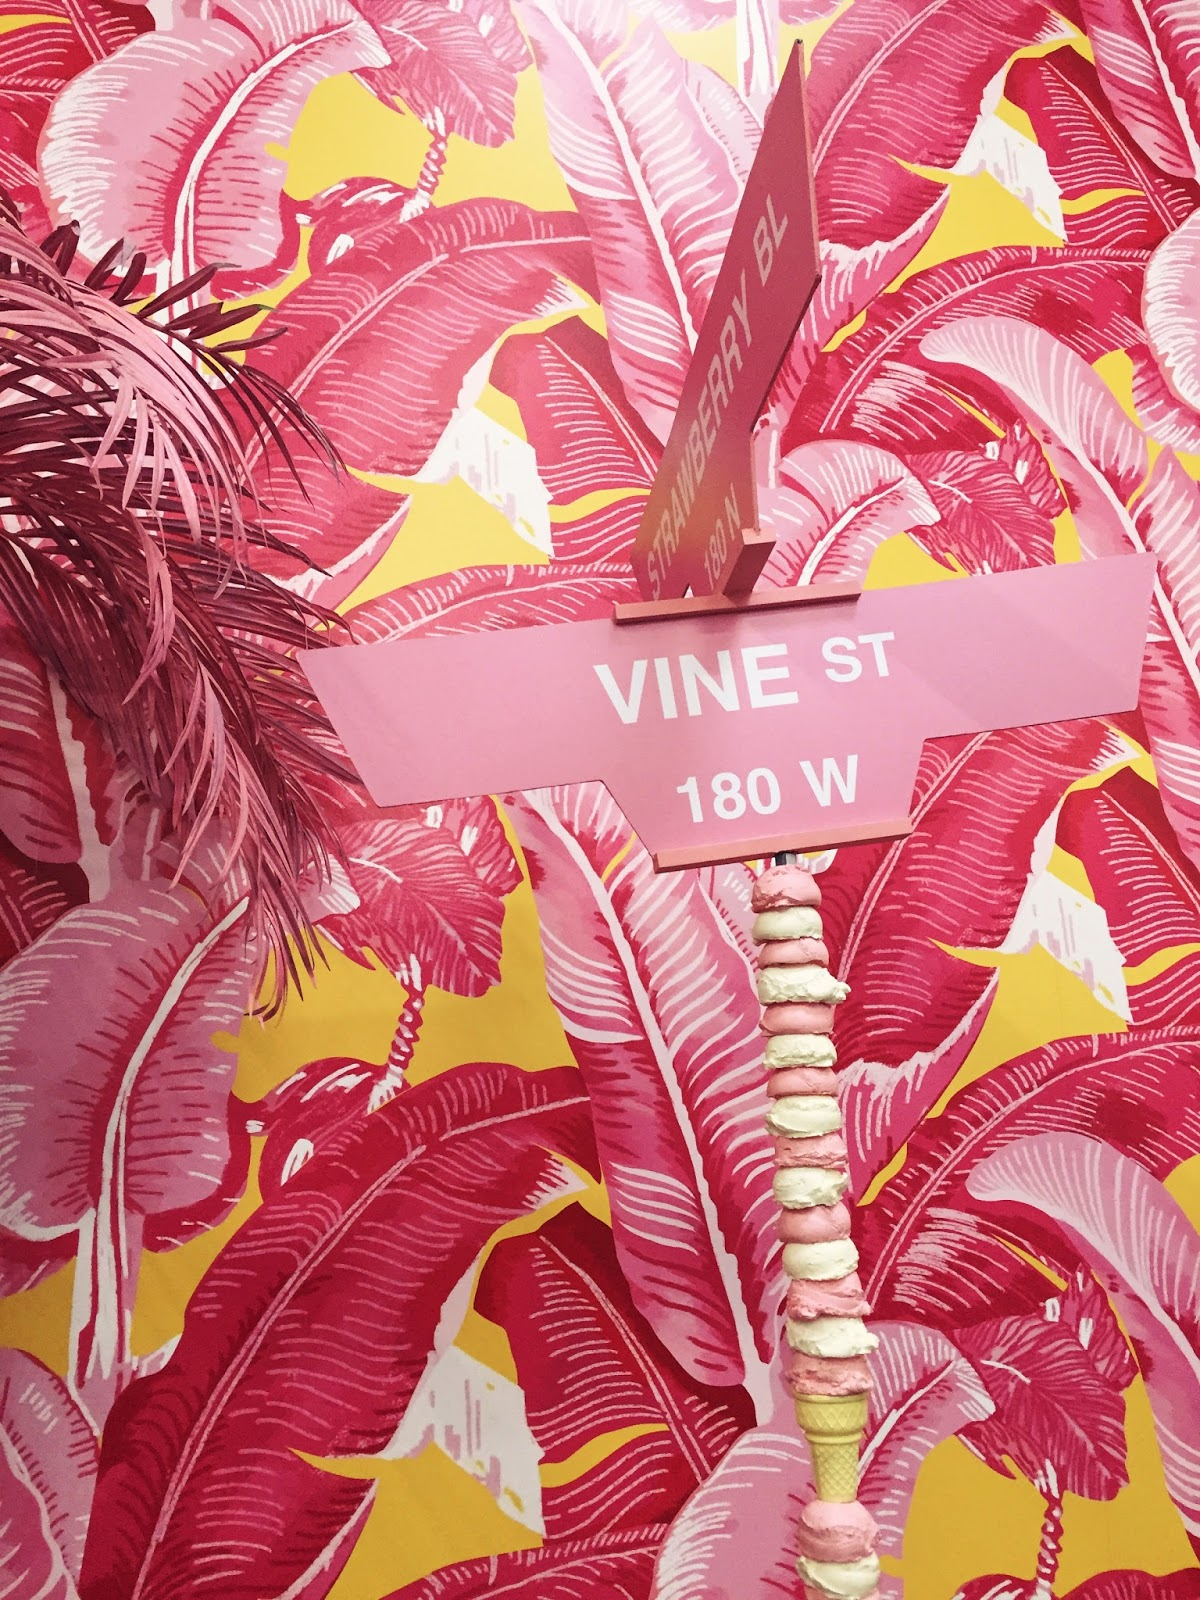 Adrienne Nguyen_INvictus_Museum  of Ice Cream_Palm Trees and Street Signs_Palm Tree Tropical Wallpaper_Interior Designs_Lifestyle Blogger